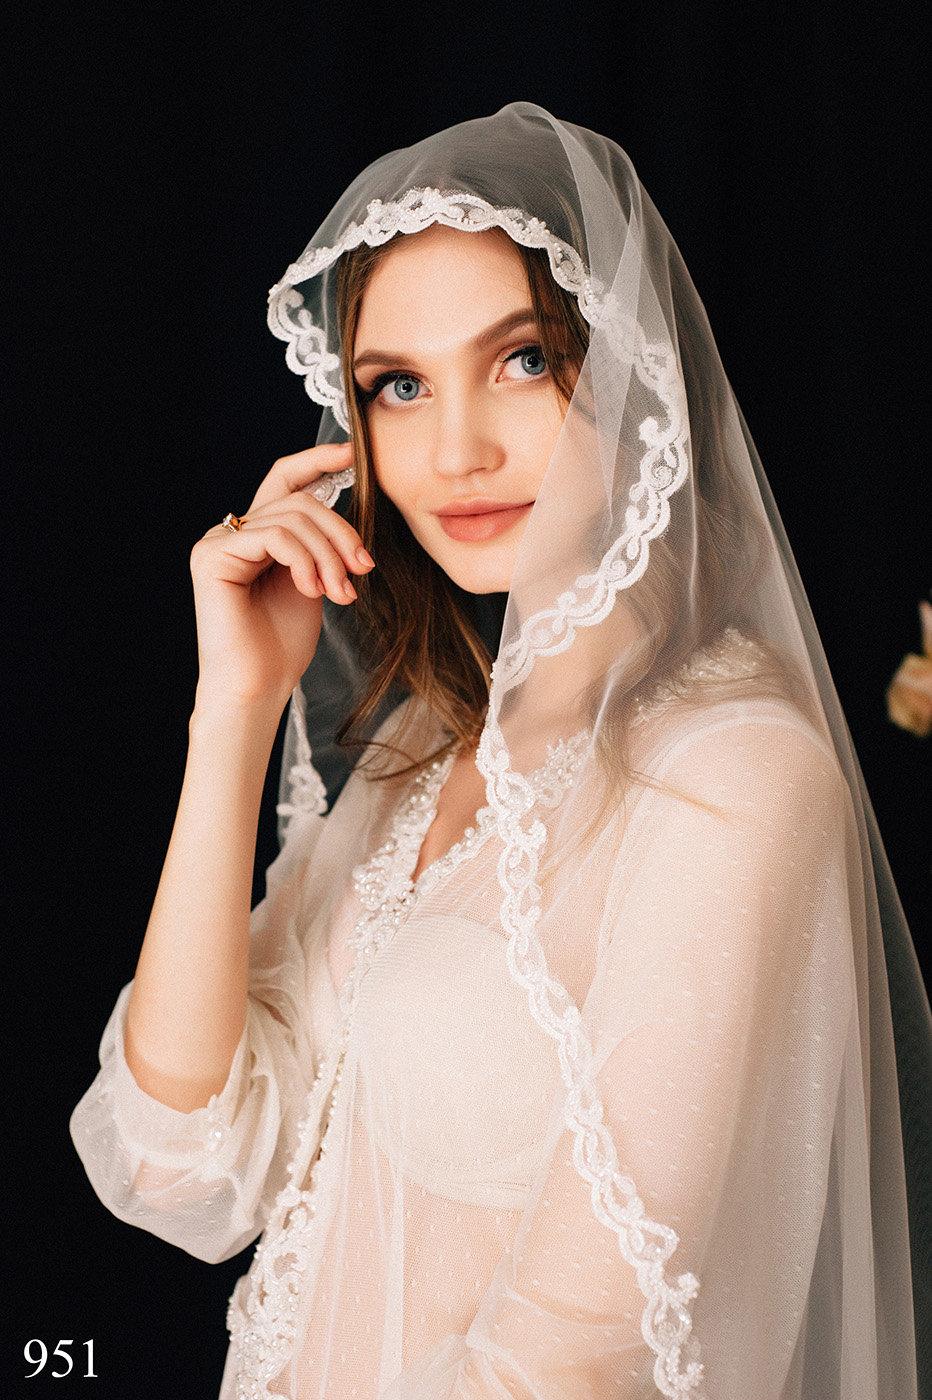 Wedding Veil Syden , Bridal Lace Veil, Chapel Cathedral Veil Tulle Cathedral Length, With Comb, One Tier